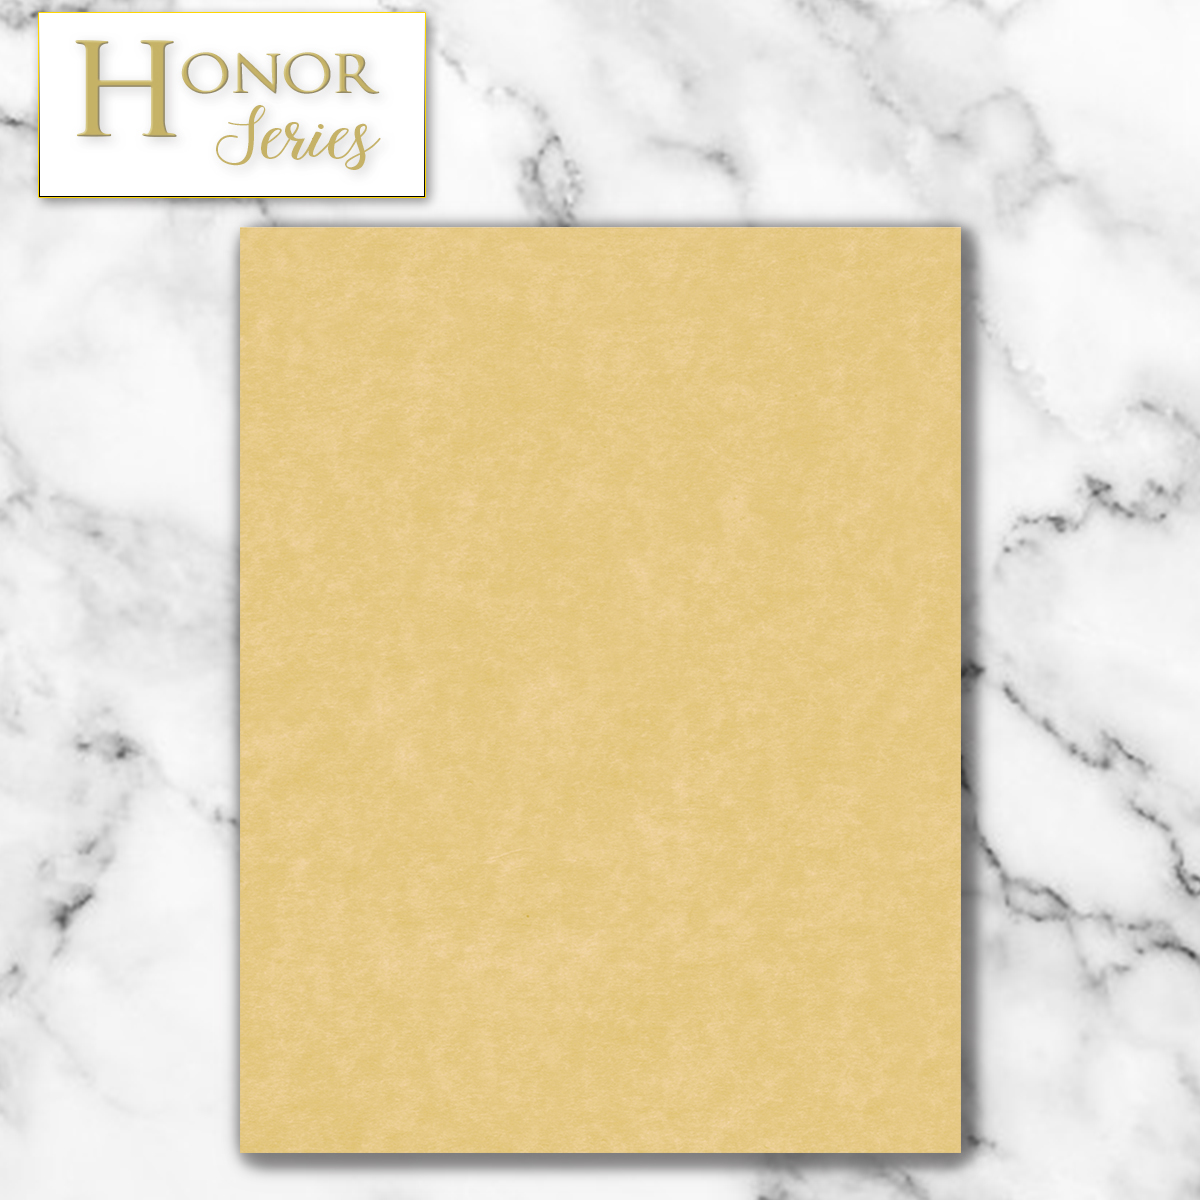 Honor Series - Gold Parchment - 100 Count